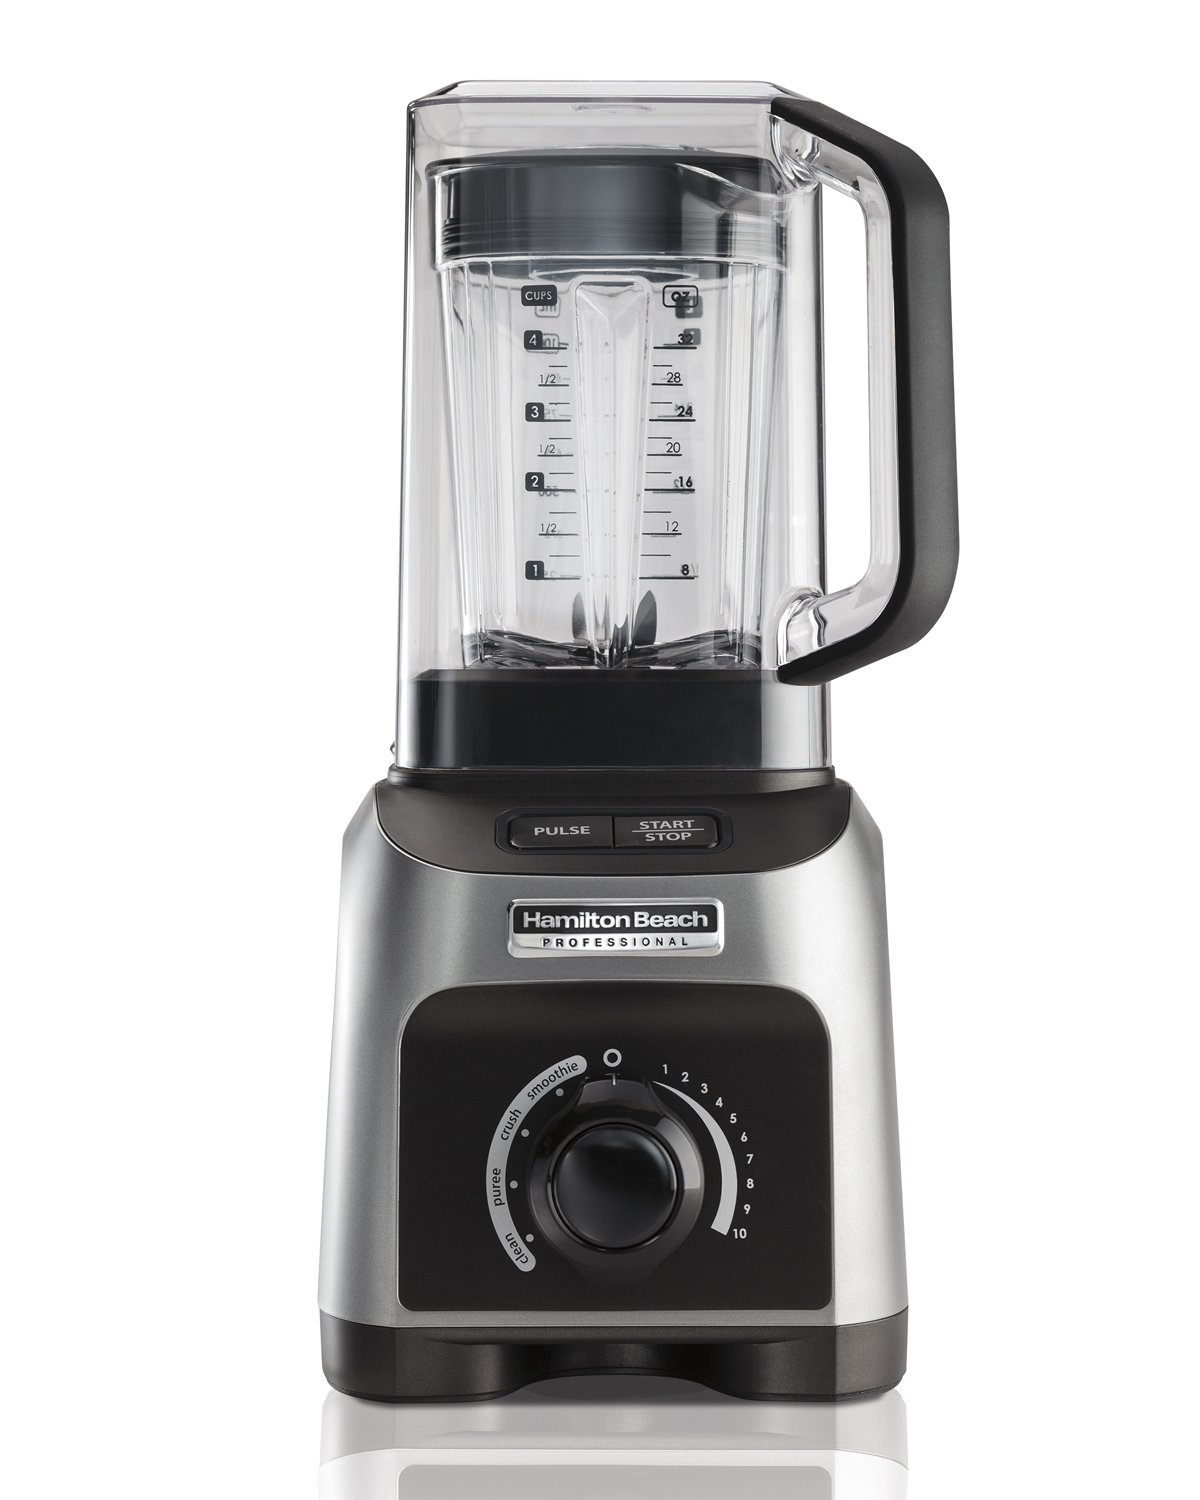 Hamilton Beach Professional 1500W Quiet Shield Blender with 32 oz BPA-free Jar & 4 Programs, Silver (58870)